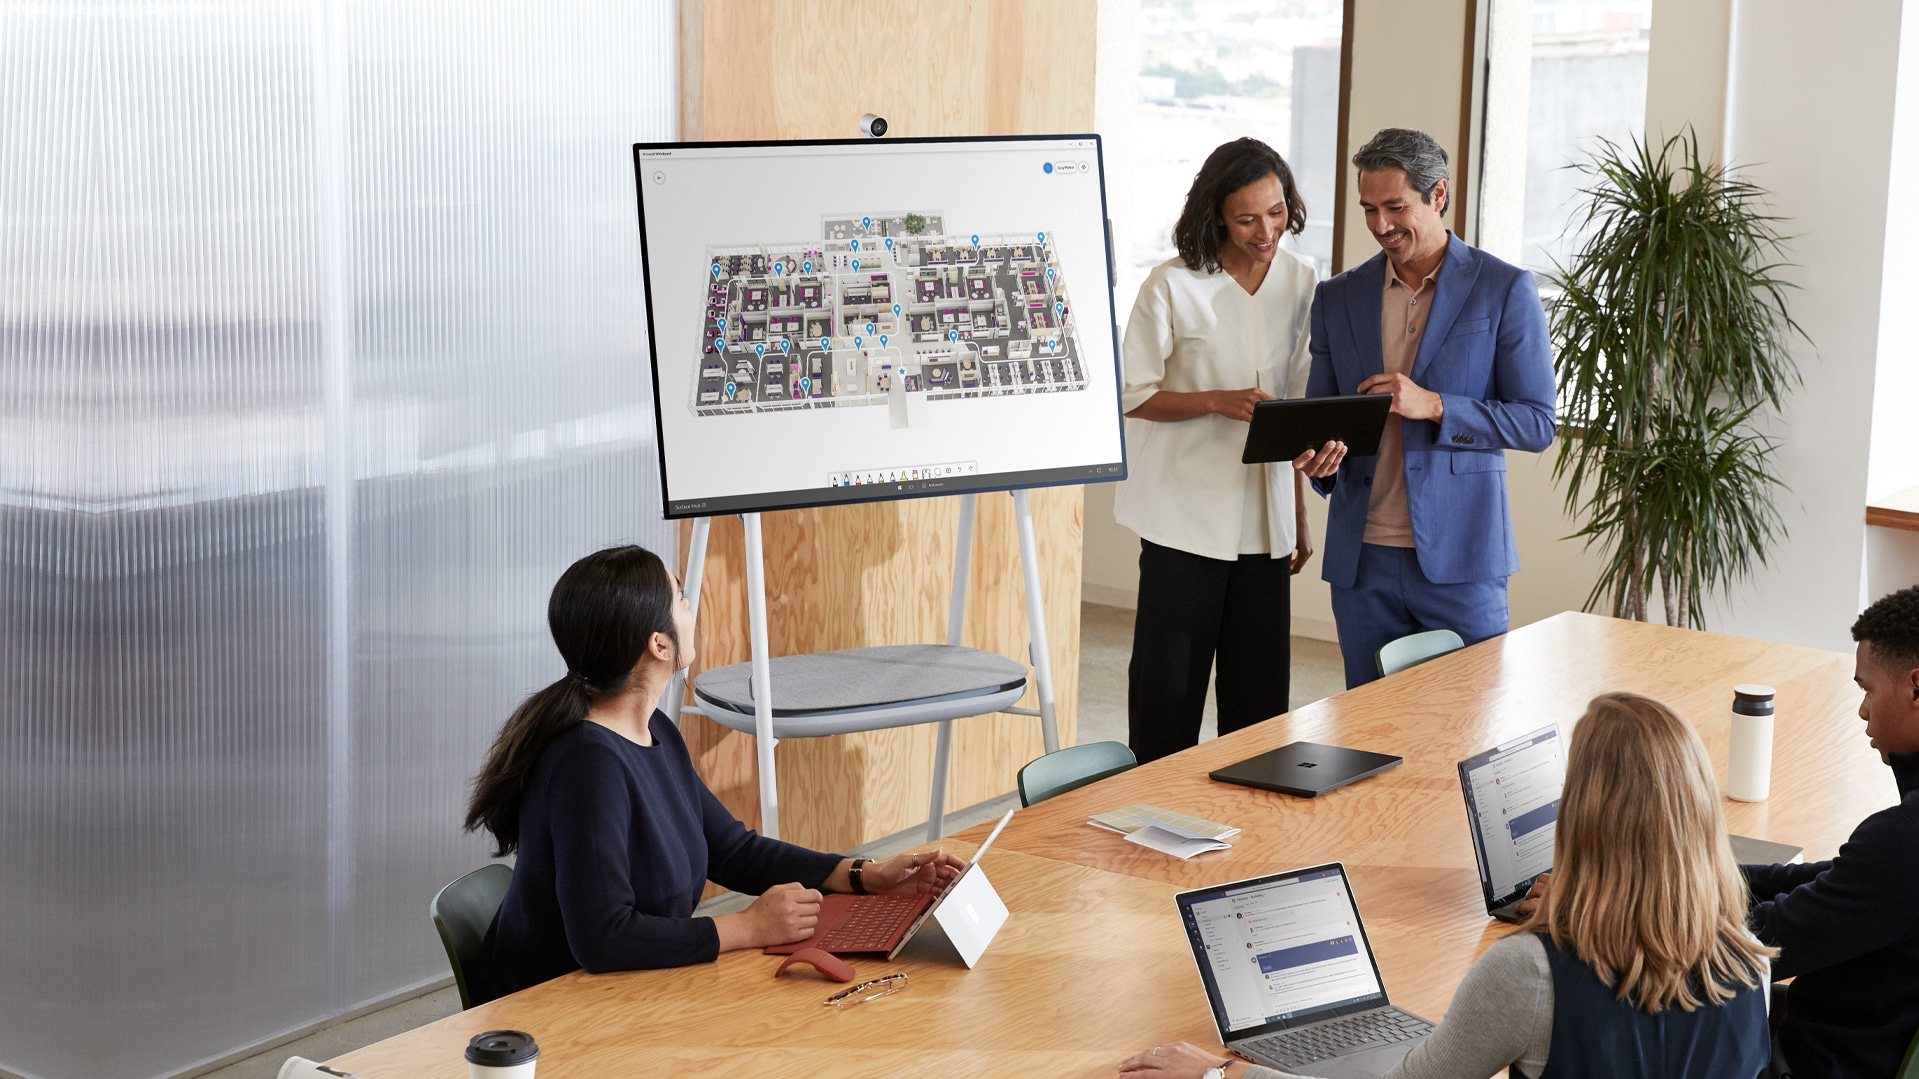 Colleagues gather in conversation in a room with several personal Surface devices and Surface Hub 2S